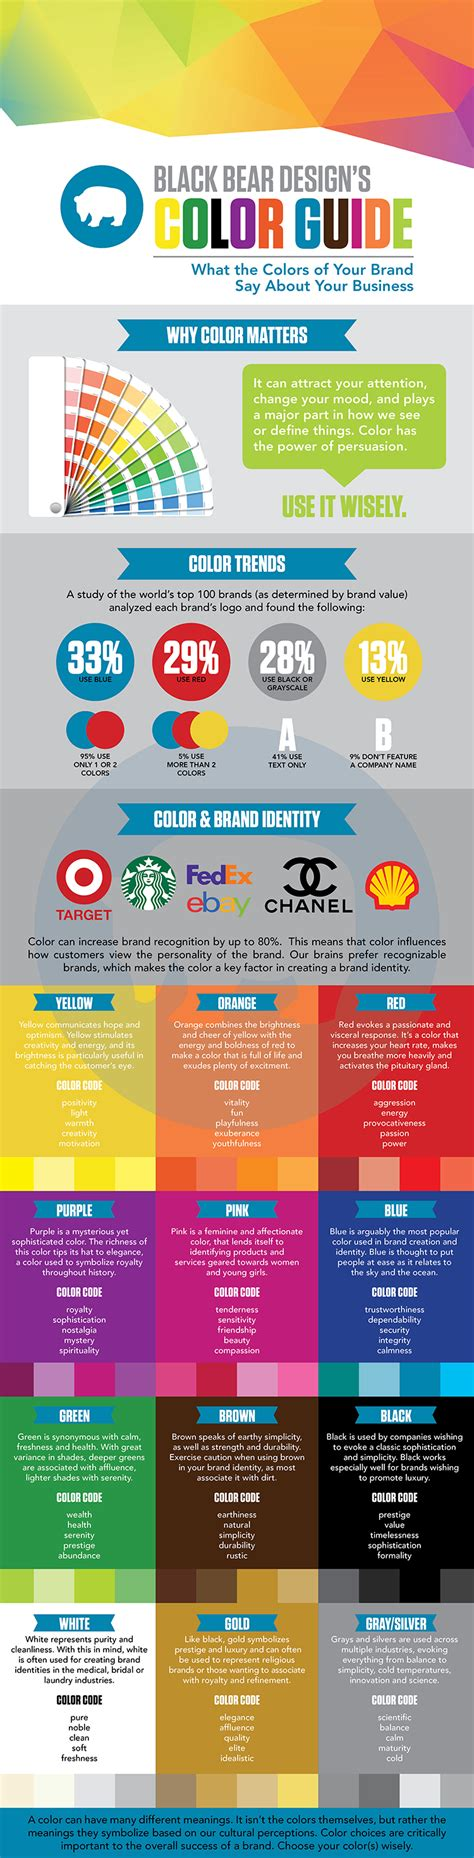 color meaning the meaning of color in graphic design color meanings